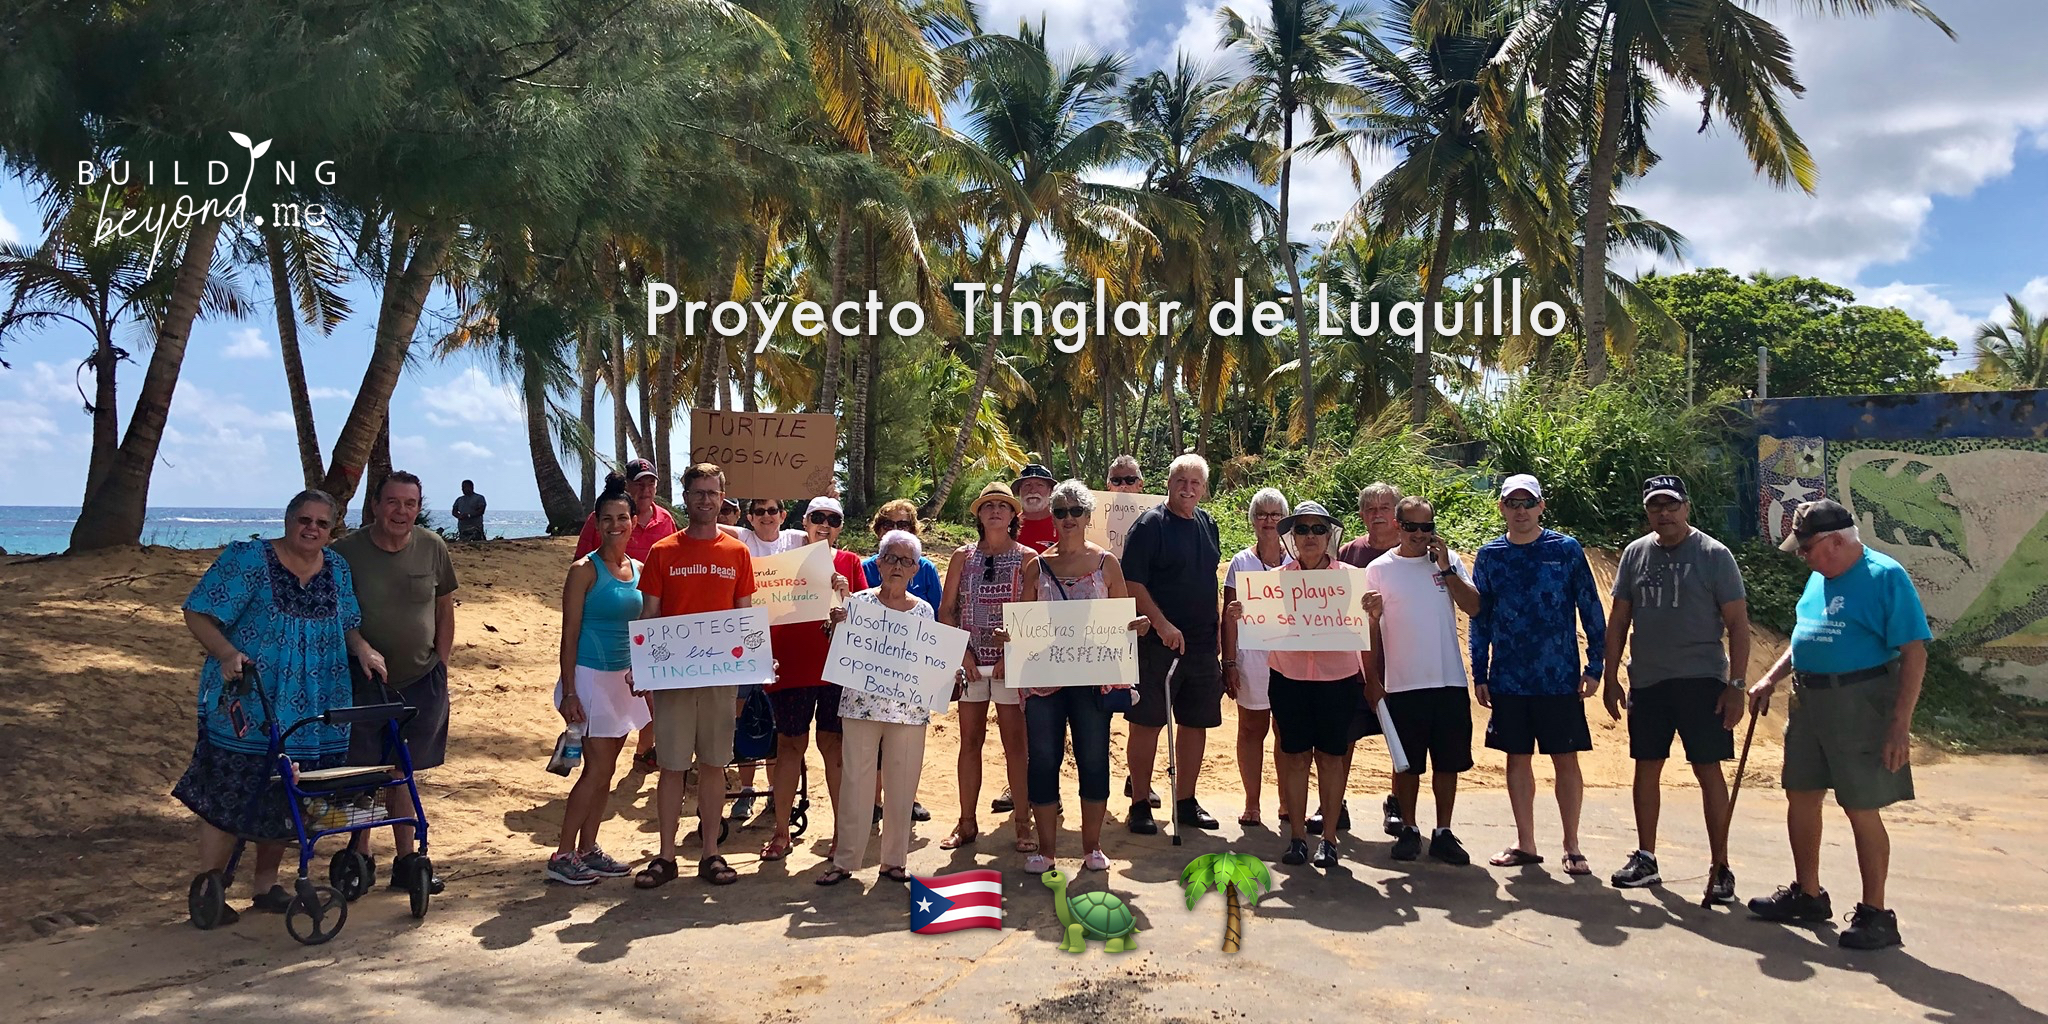 Everyone knows that turtles are in danger of losing nesting grounds all over the world. Here in Puerto Rico, we can still save one, and the community is coming together to try to get it done.